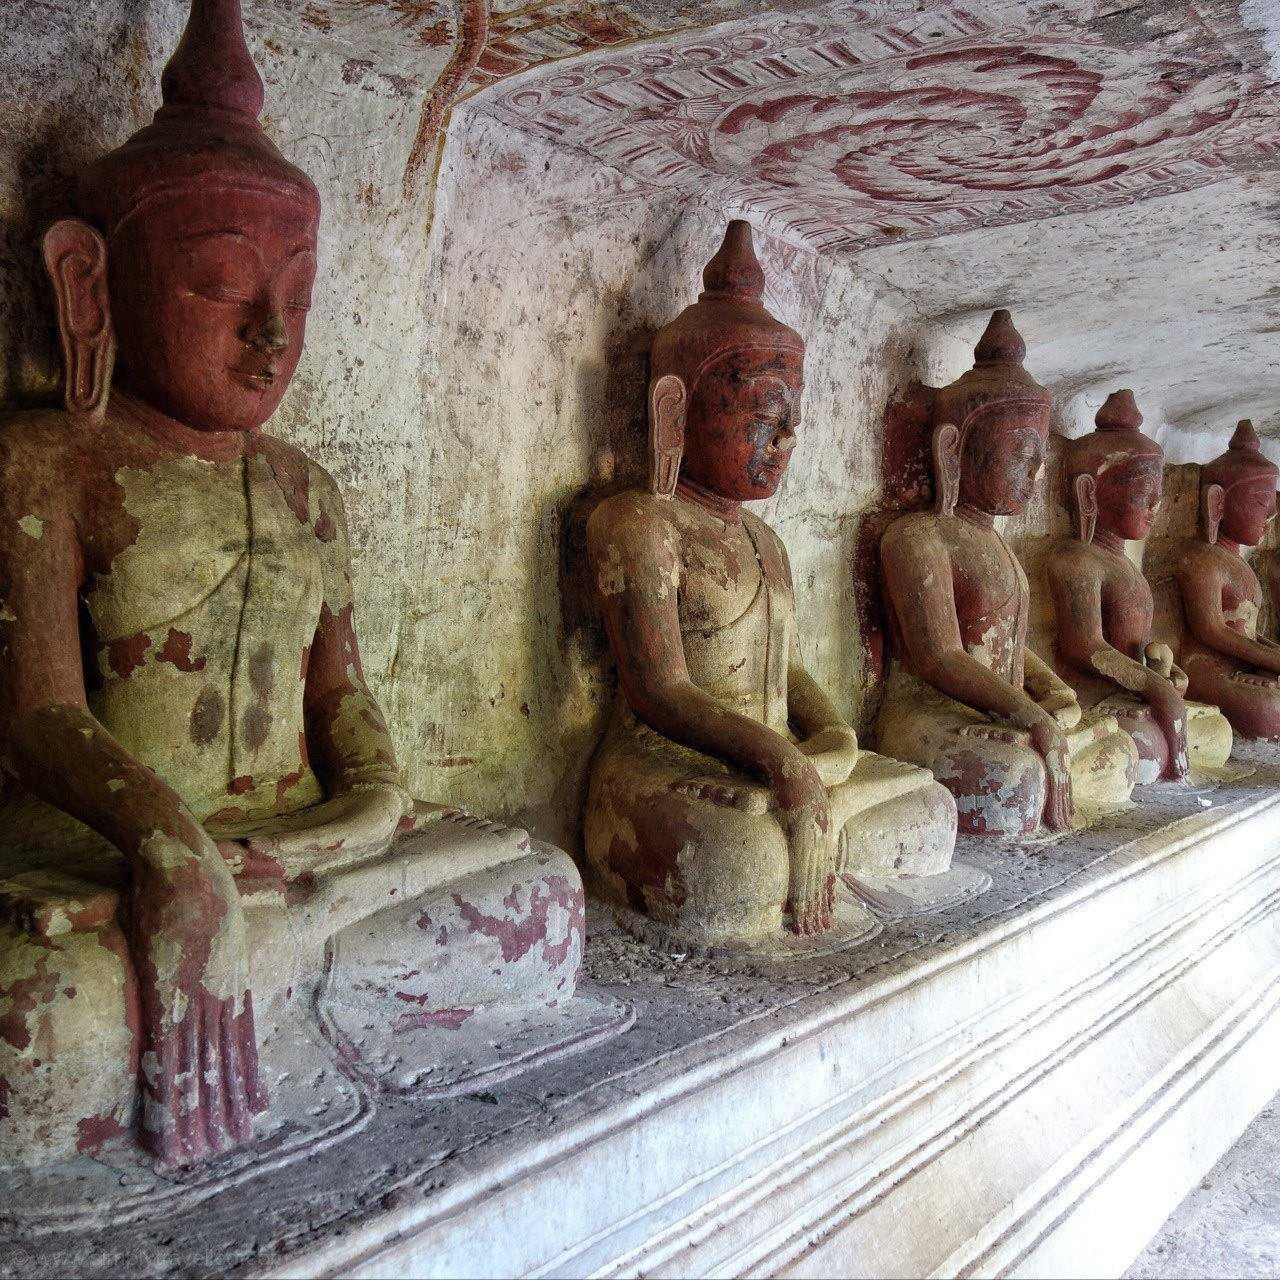 Enjoy the magic of the Pho Win Taung Caves! The Best Myanmar